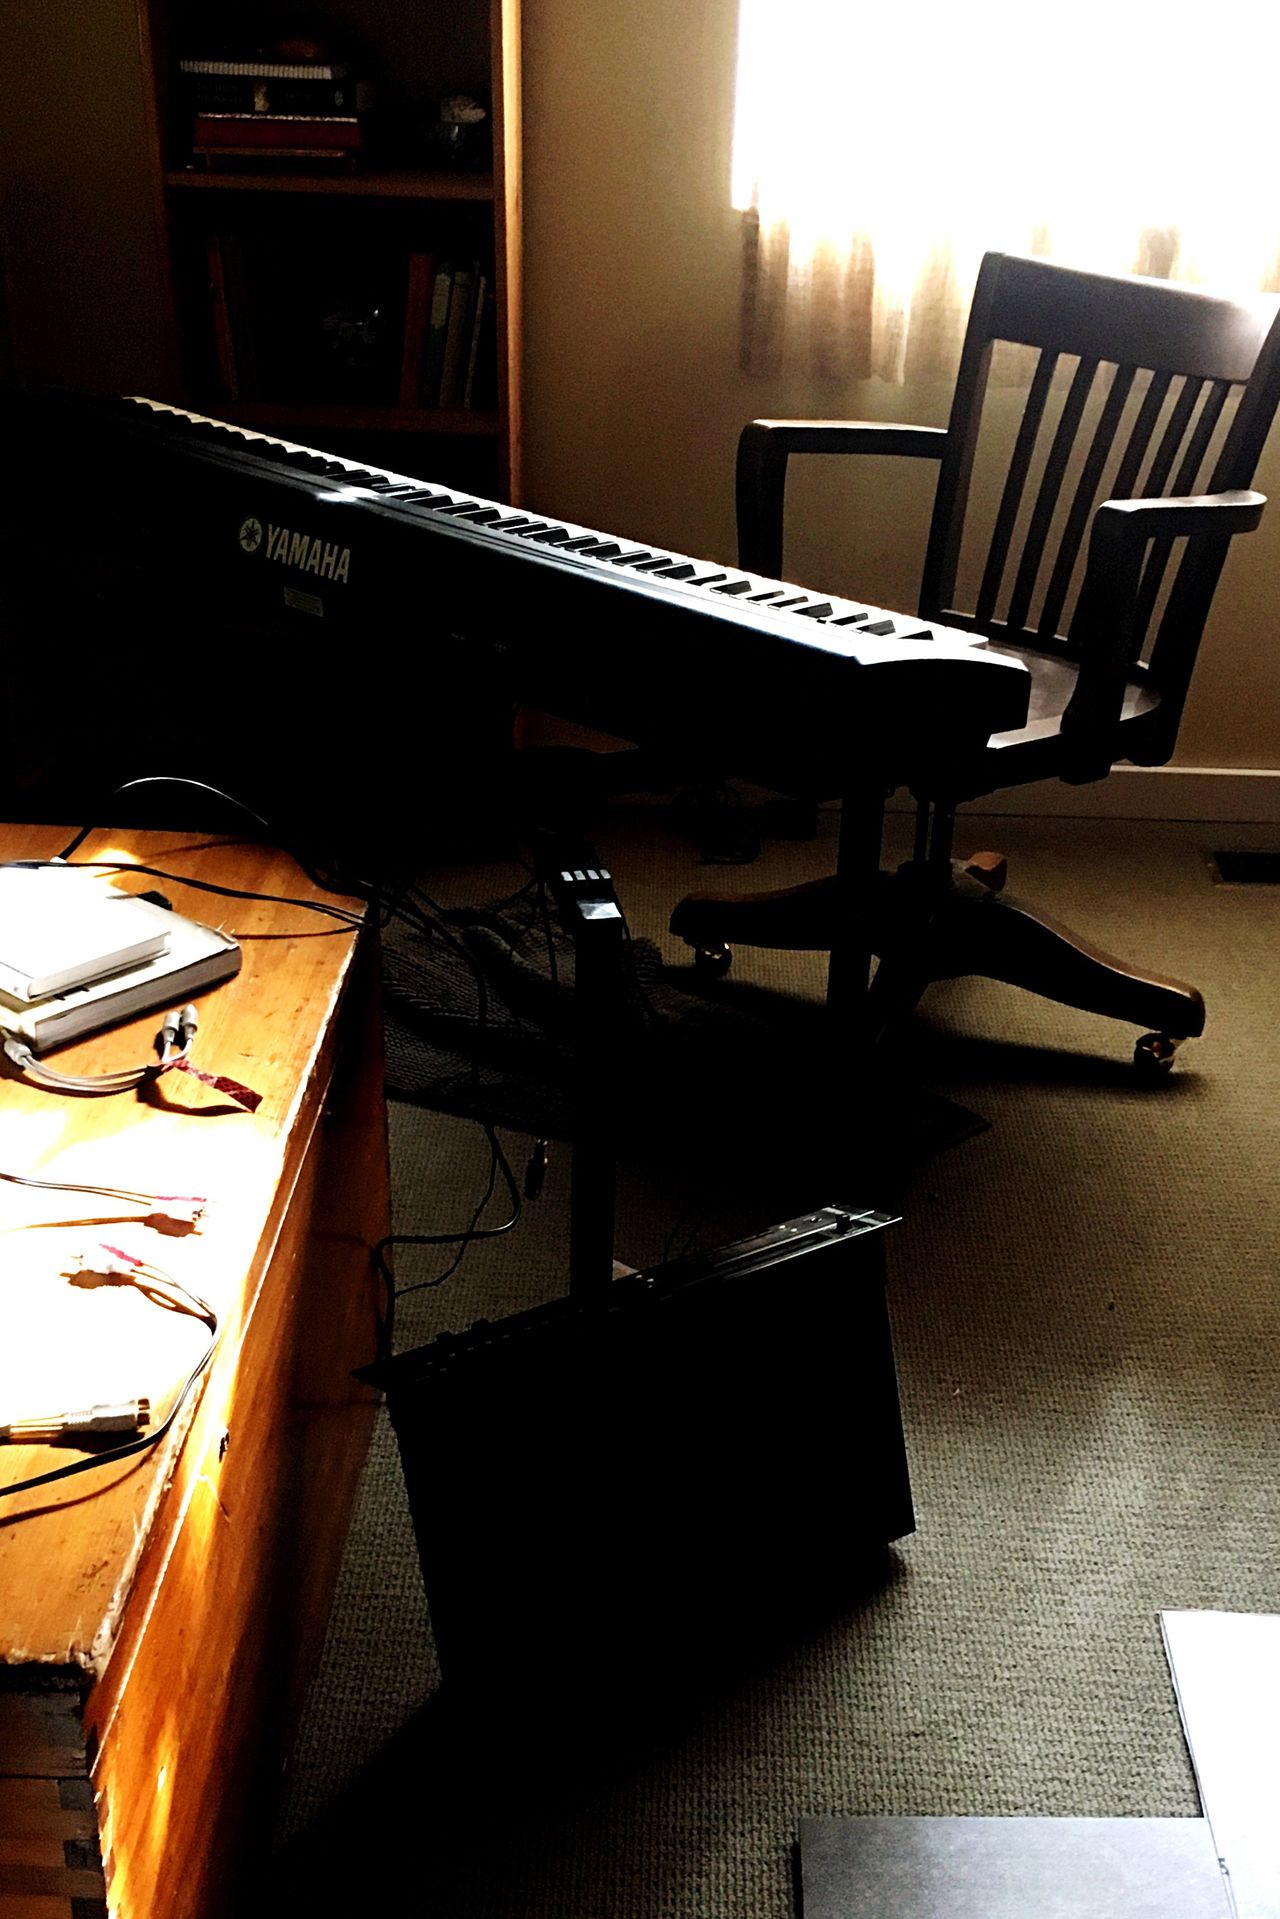 Electric Piano Keyboard Instrument Piano Morning Indoors  No People Sunlight Music Arts Culture And Entertainment Sound Recording Equipment Day Jazz Neo Soul Casual Making Music Bedroom